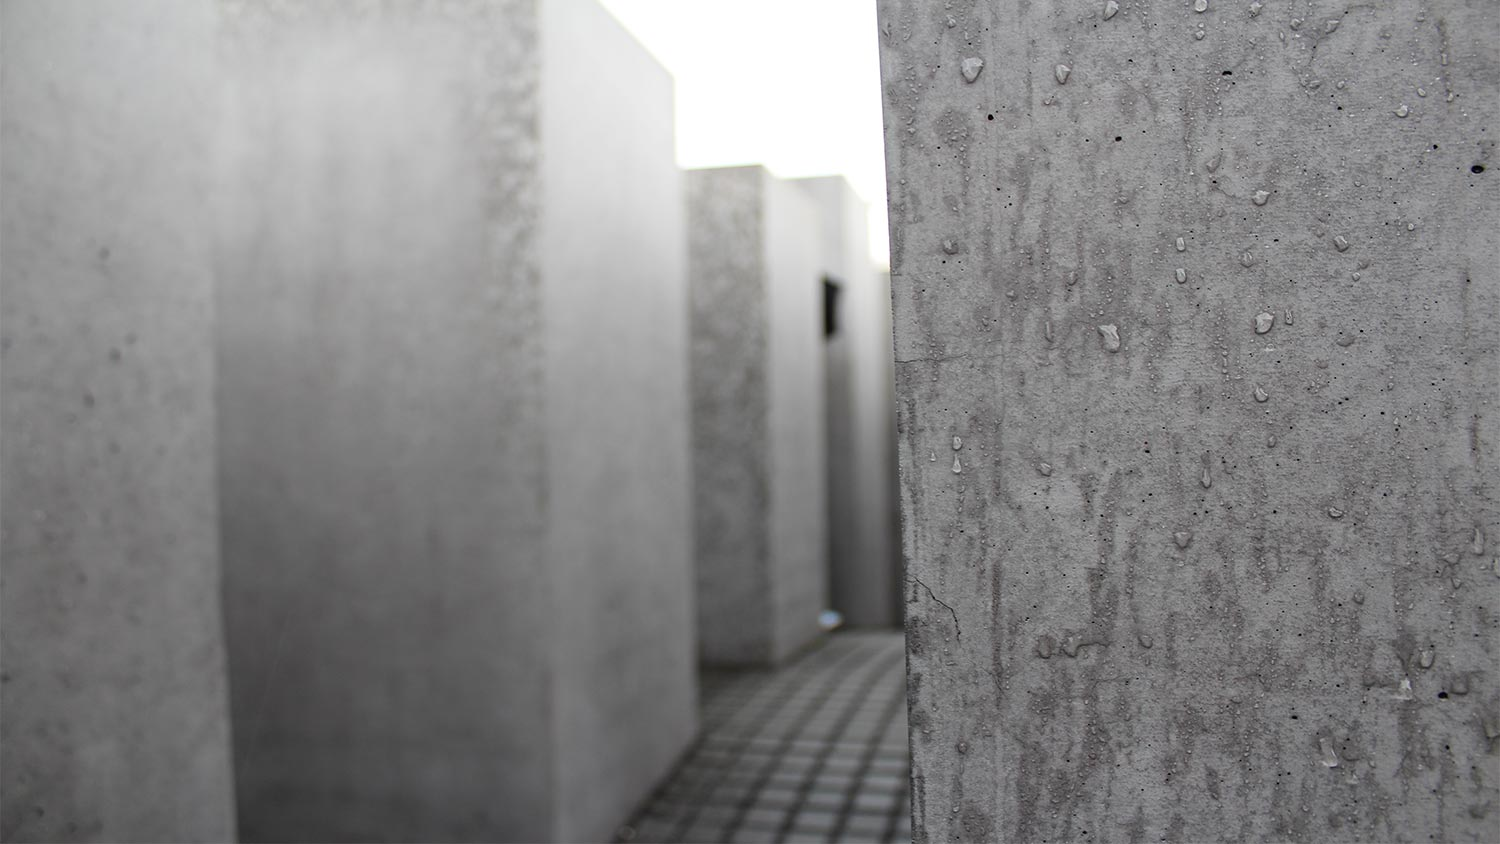 holocaustmemorial-blog-042116